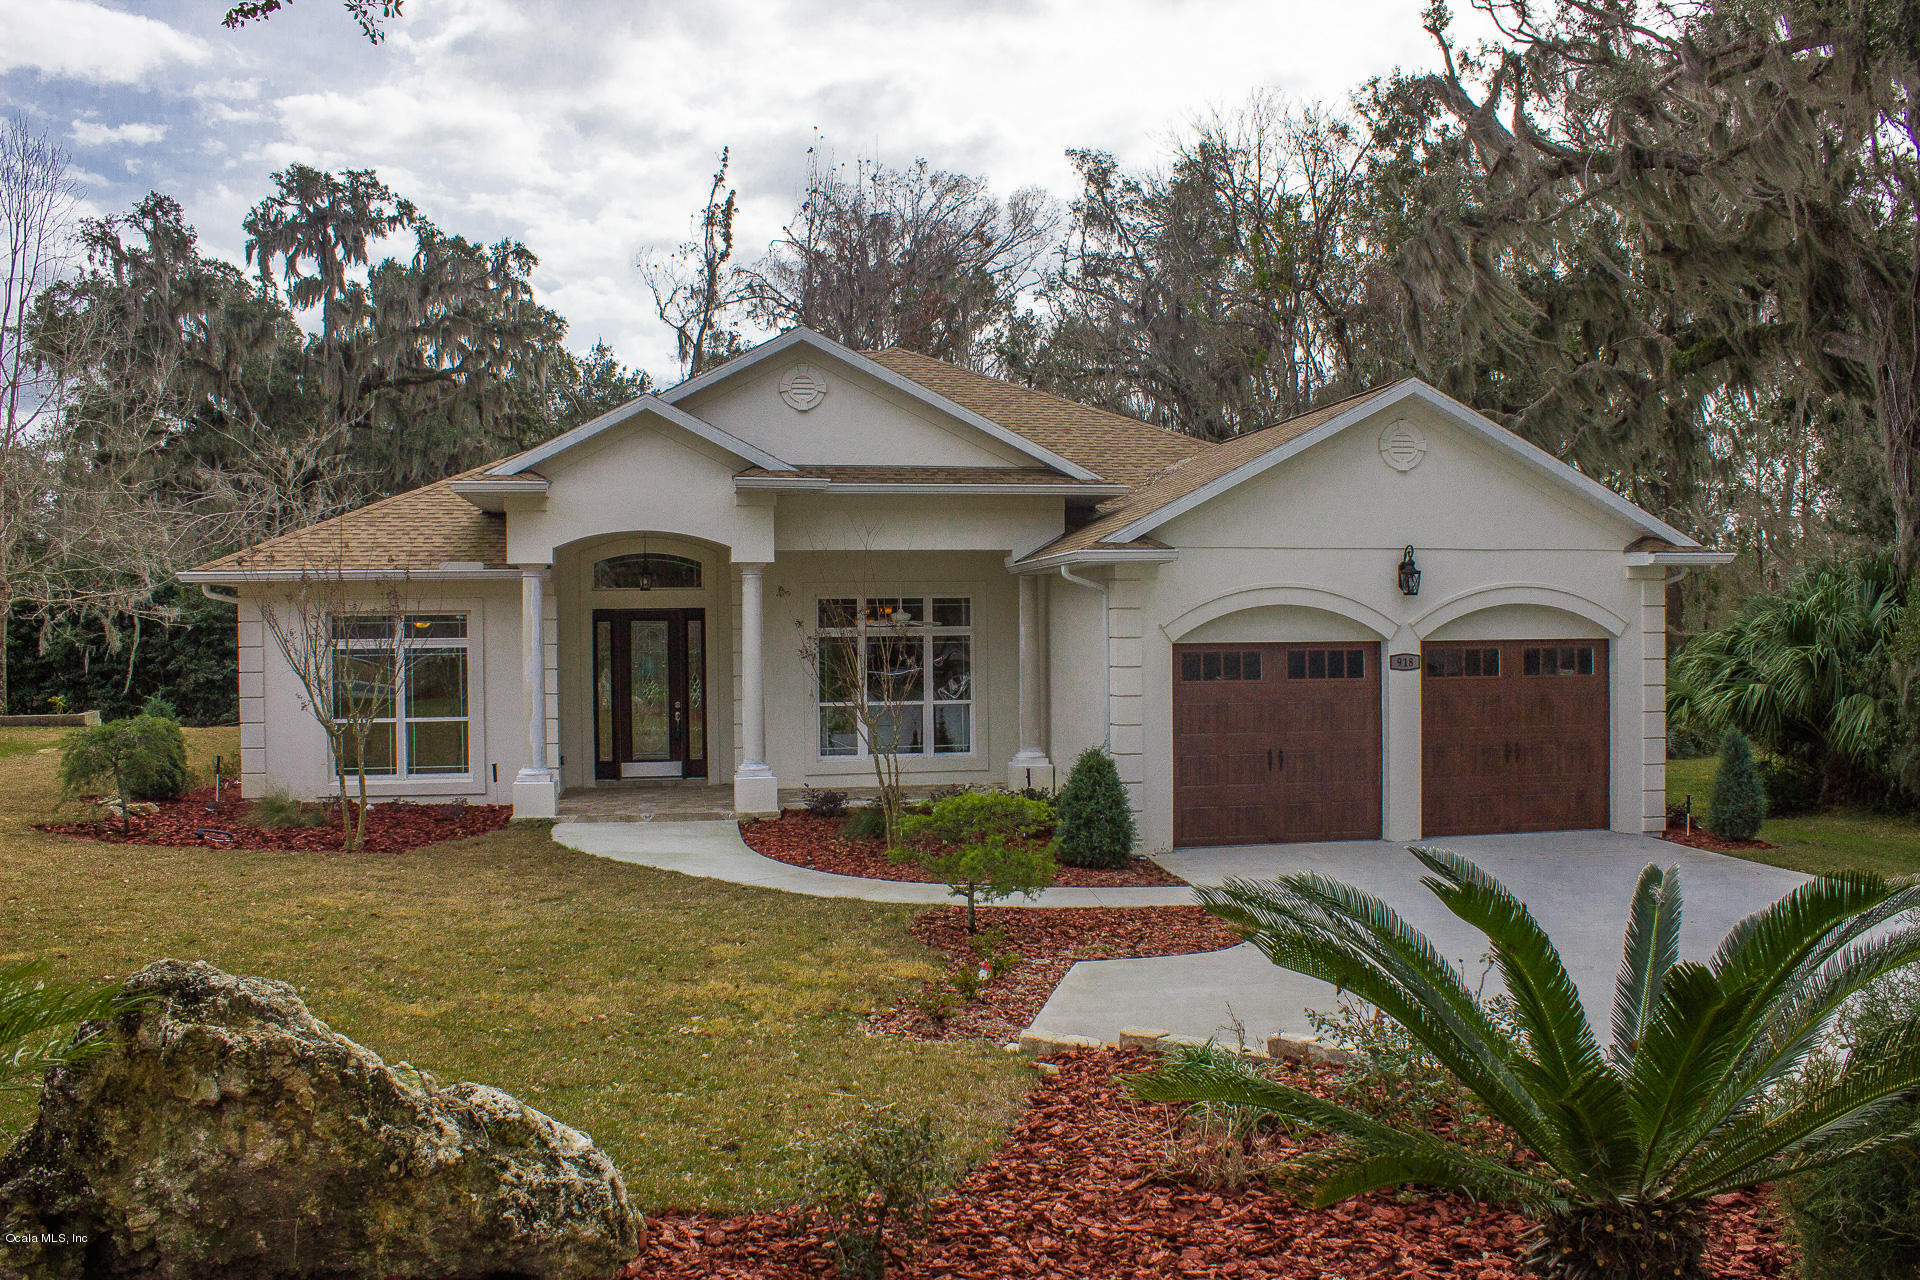 918 SW 35TH LANE, OCALA, FL 34471